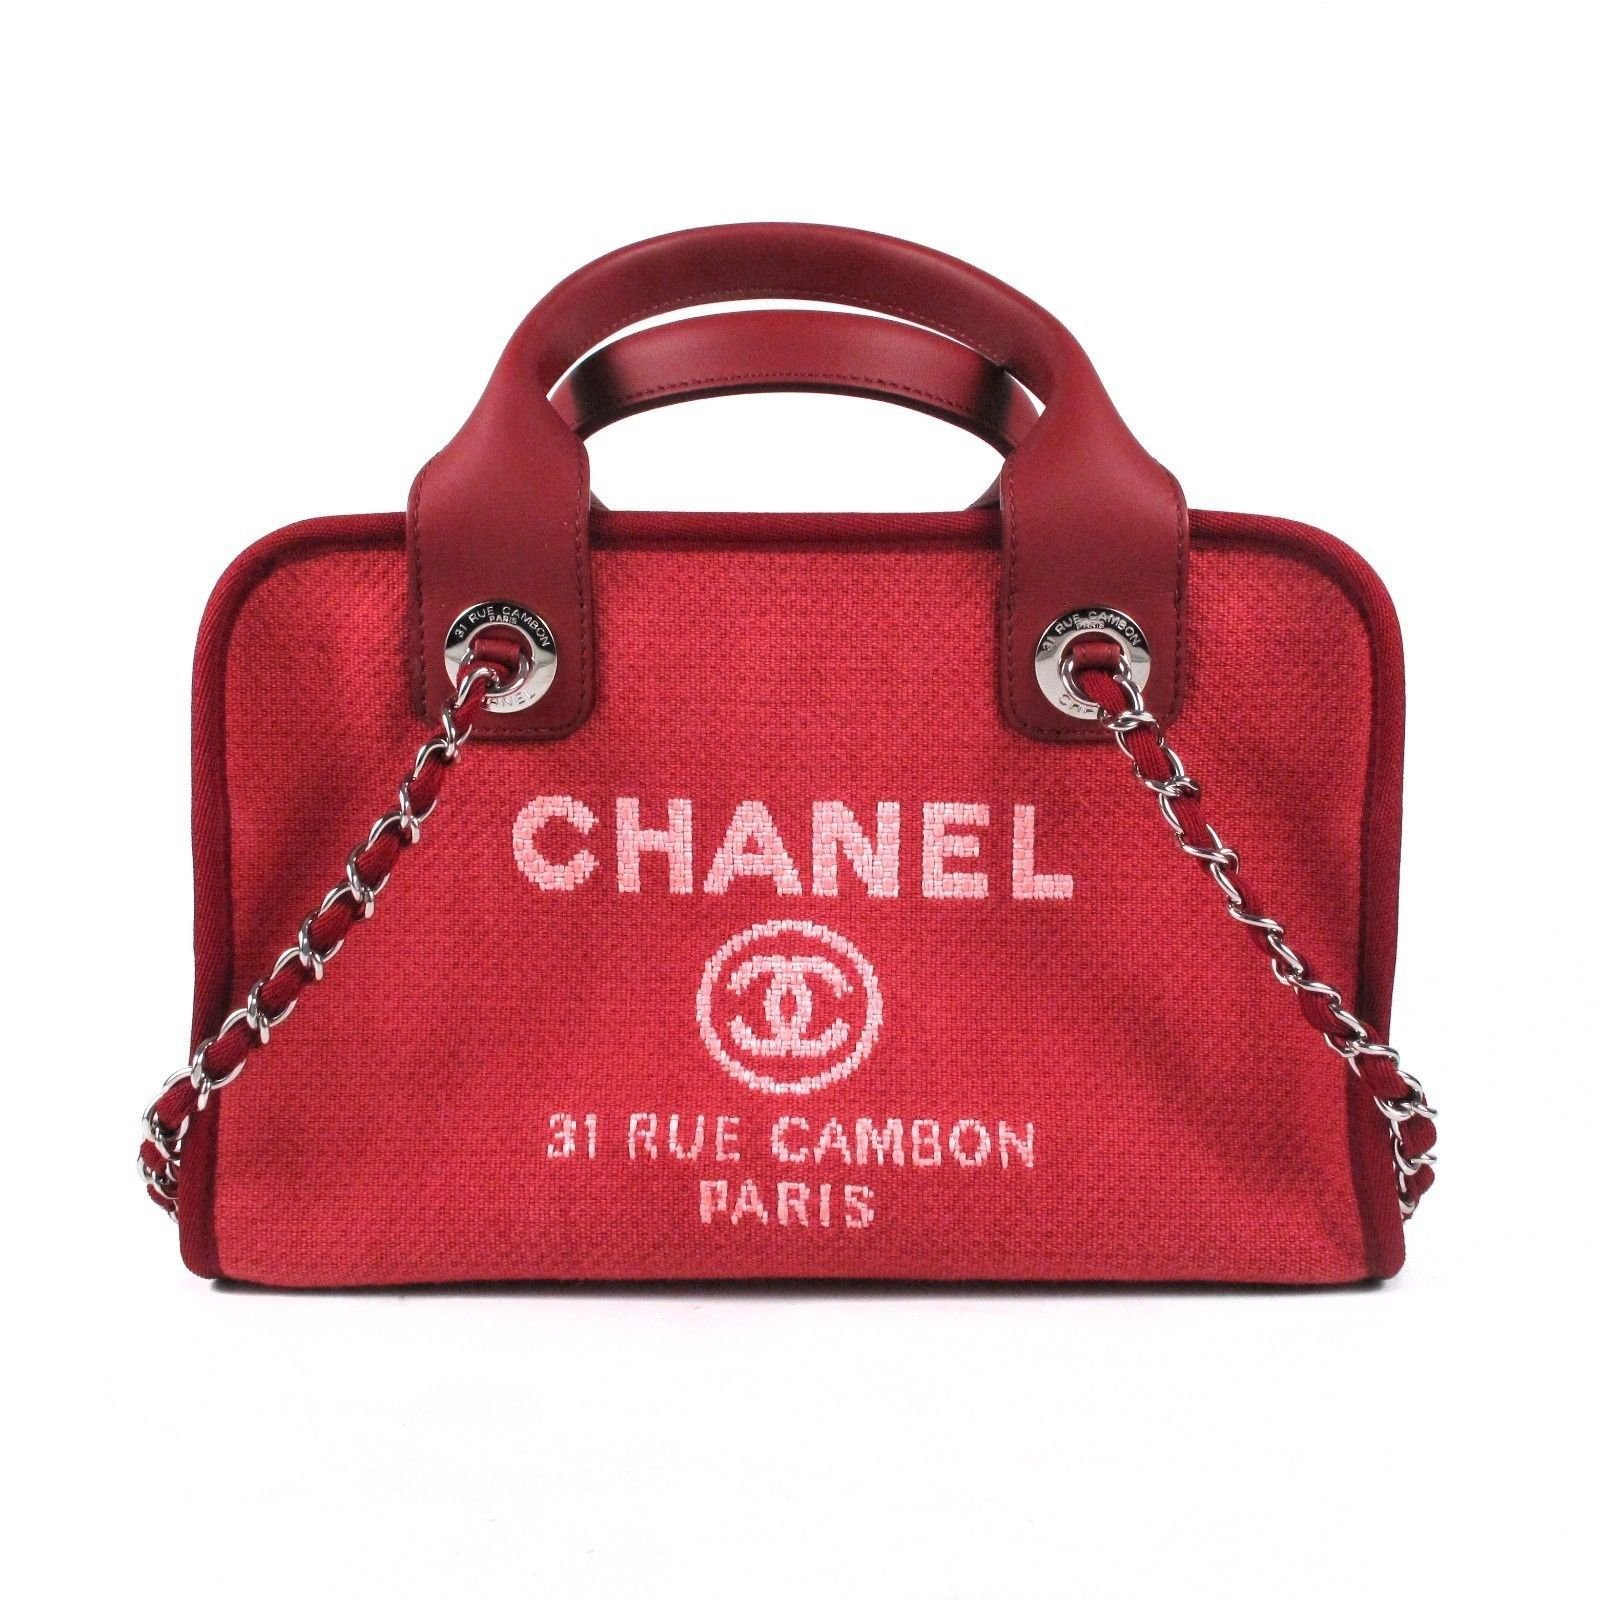 Chanel Deauville Bowling Bag Handbags Cloth Red Ref 37132